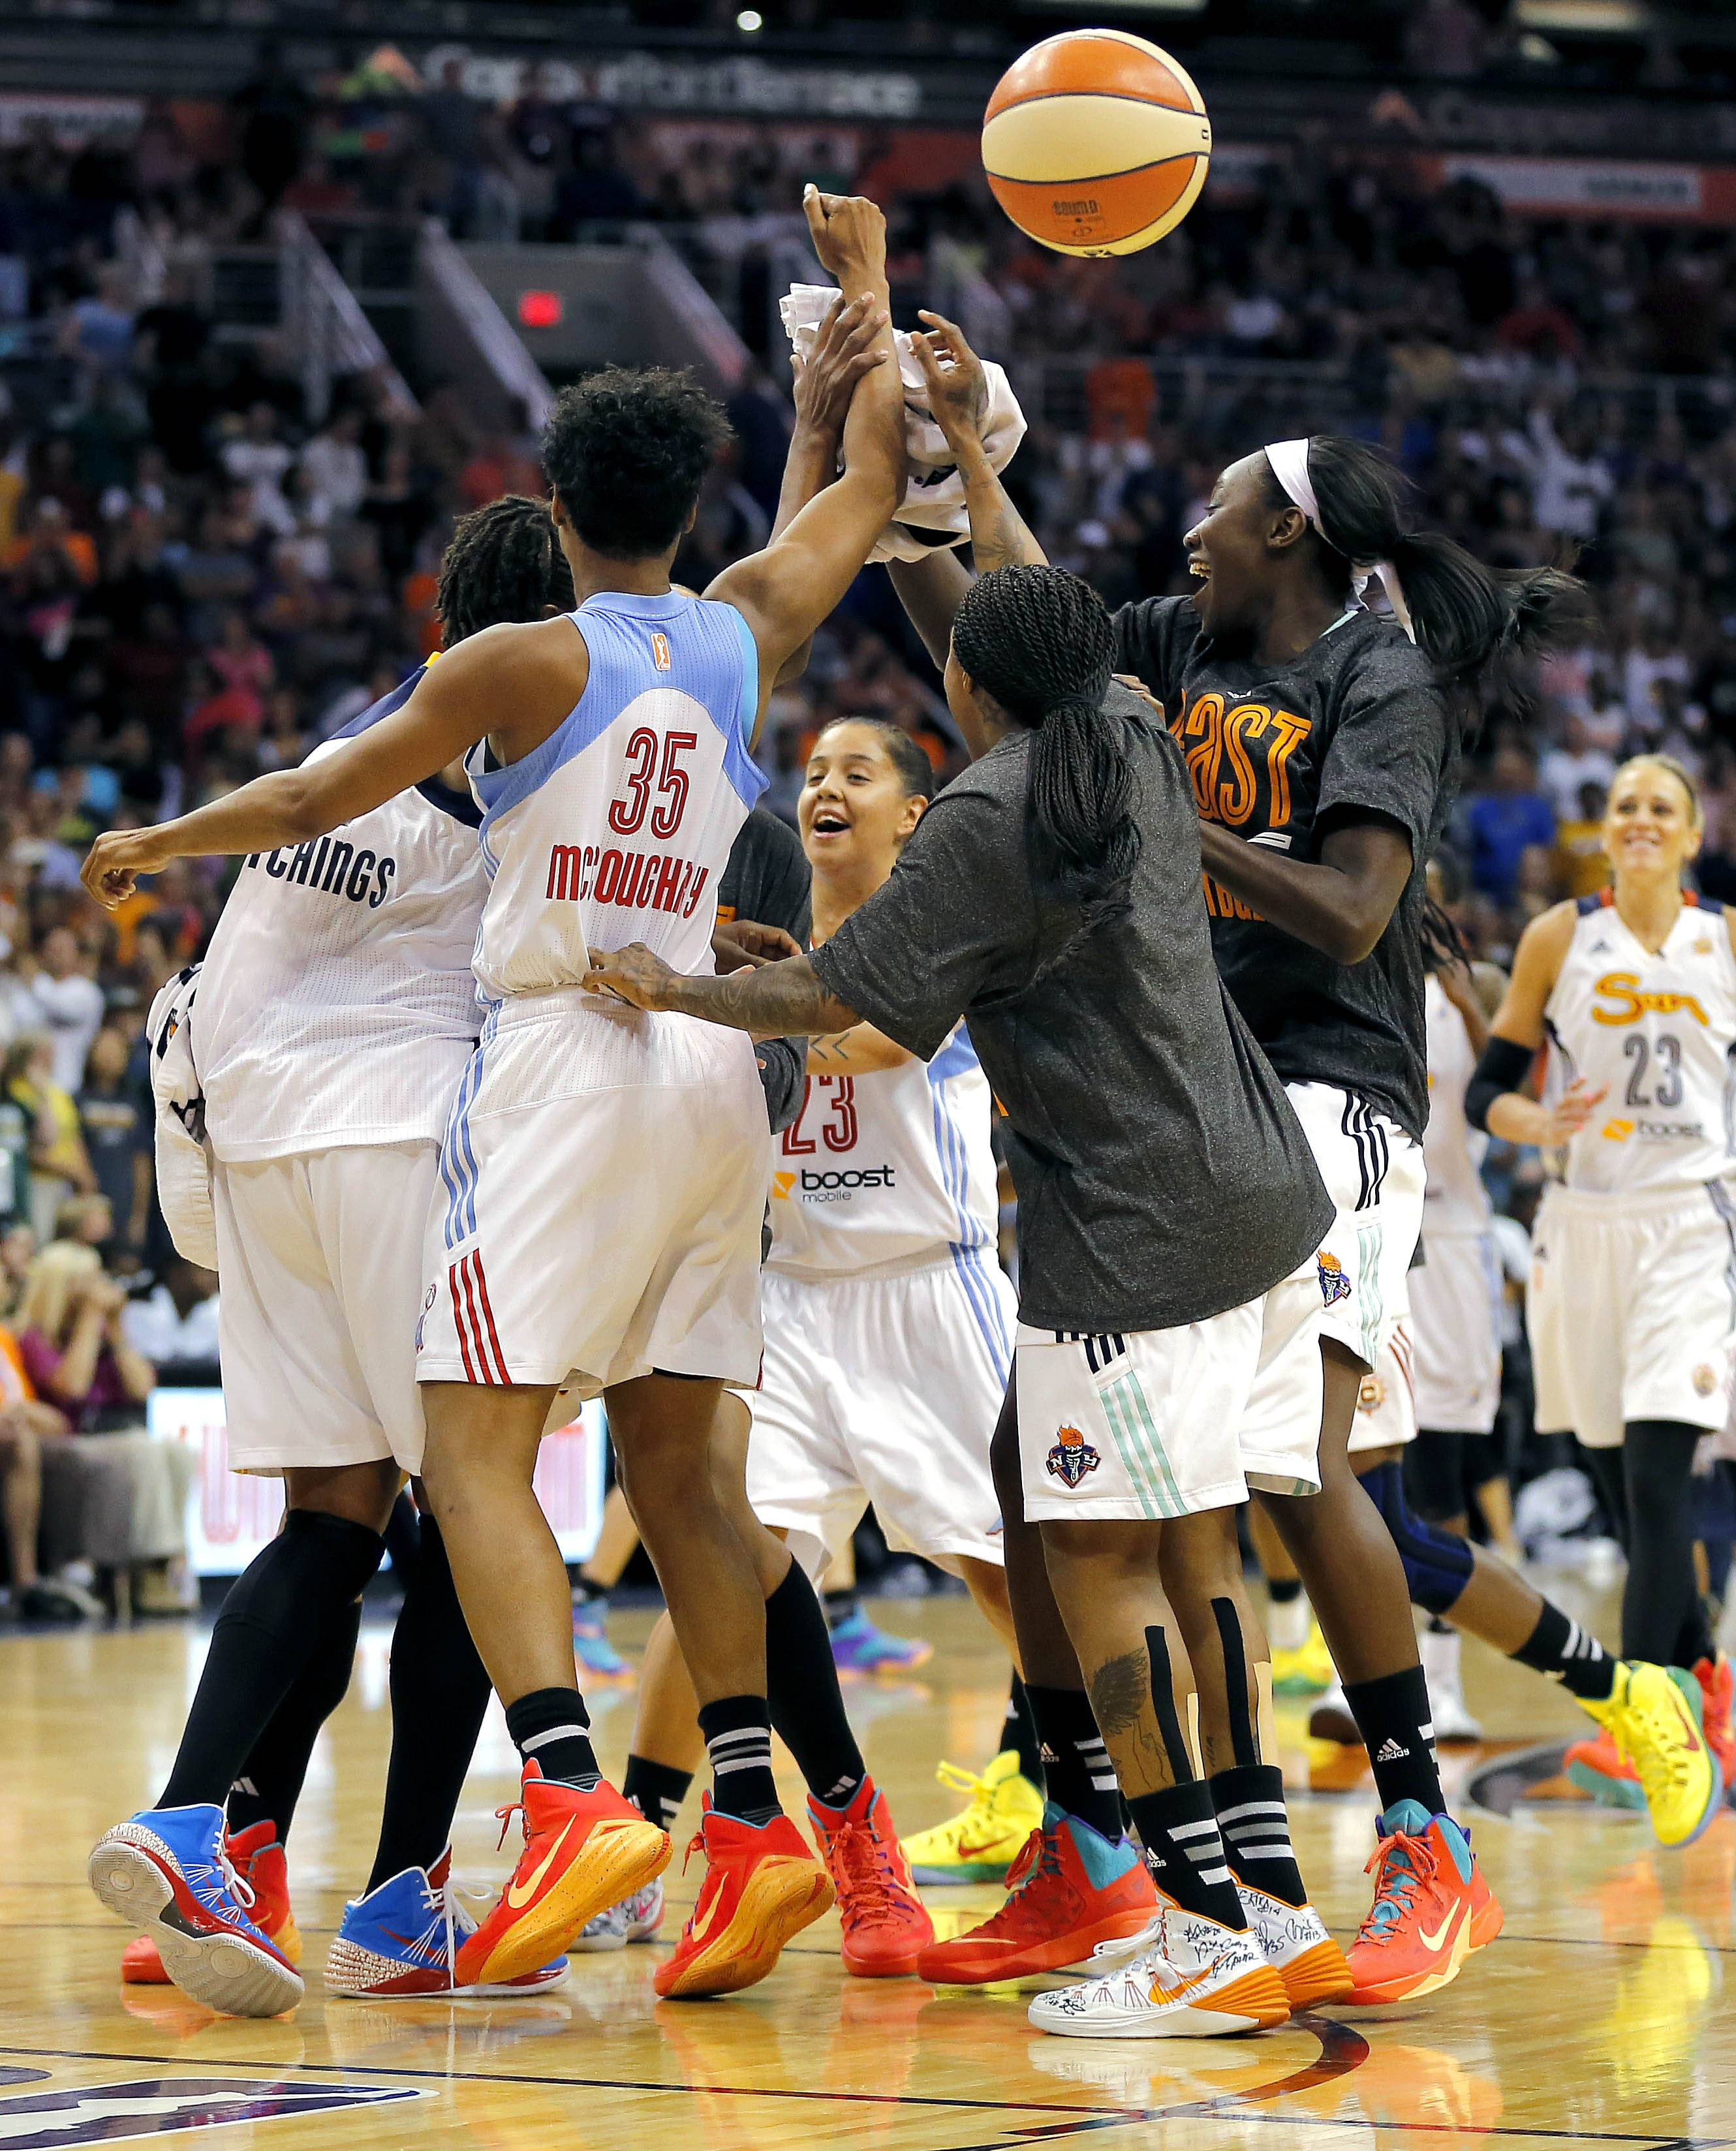 East players celebrate as time expires in overtime of the WNBA All-Star basketball game Saturday in Phoenix. The East won 125-124 in overtime.